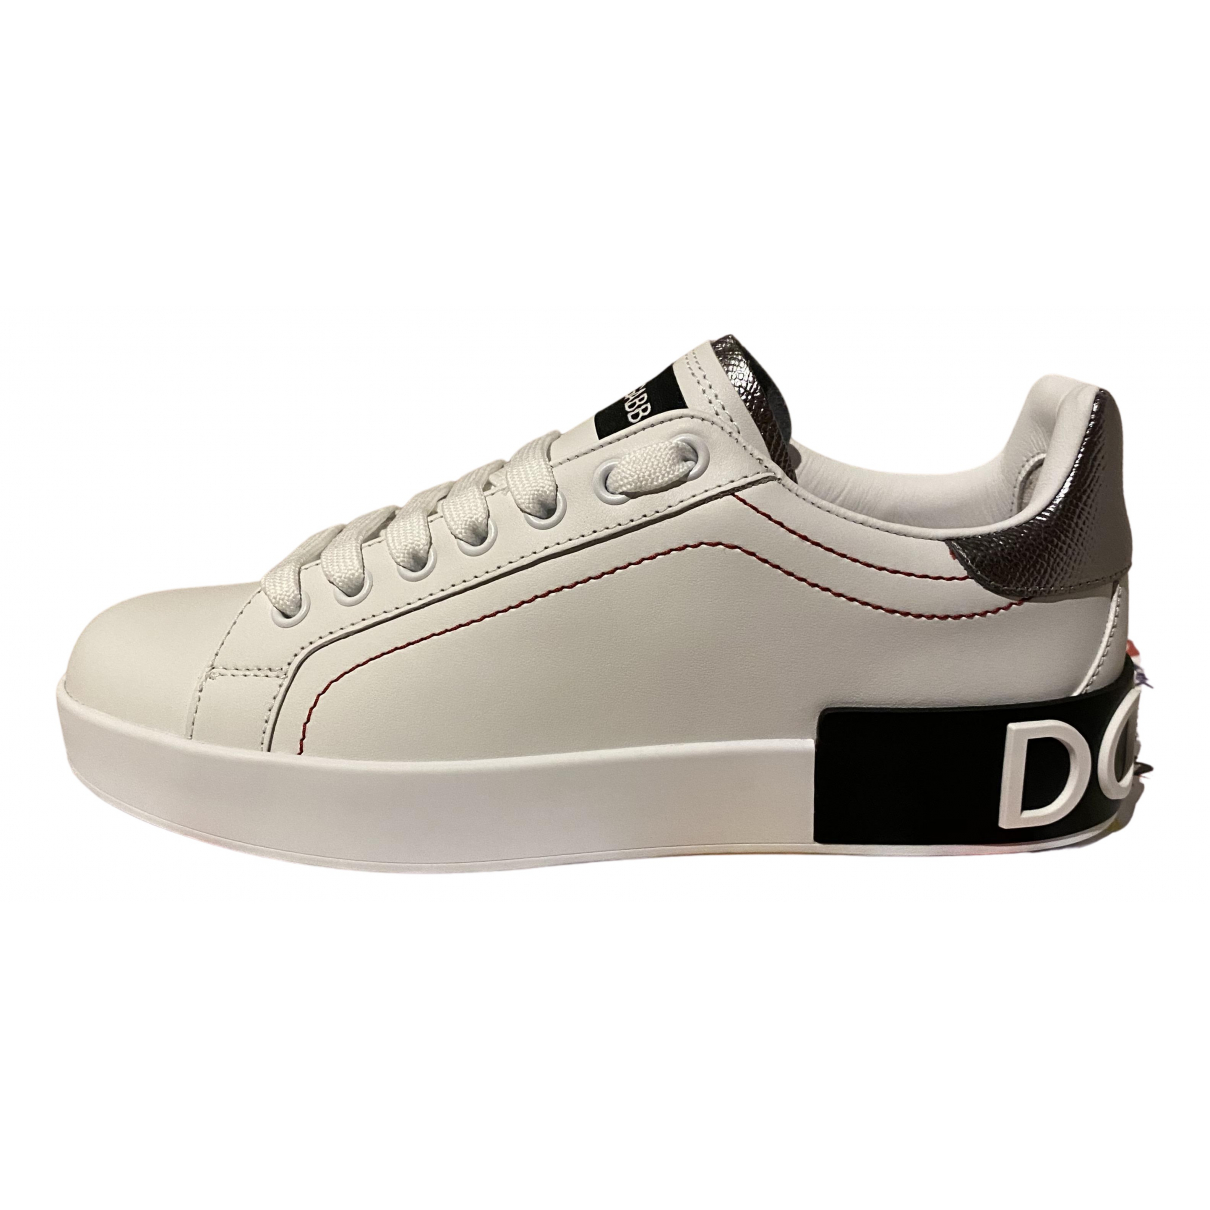 Dolce & Gabbana Portofino White Leather Trainers for Women 37 EU